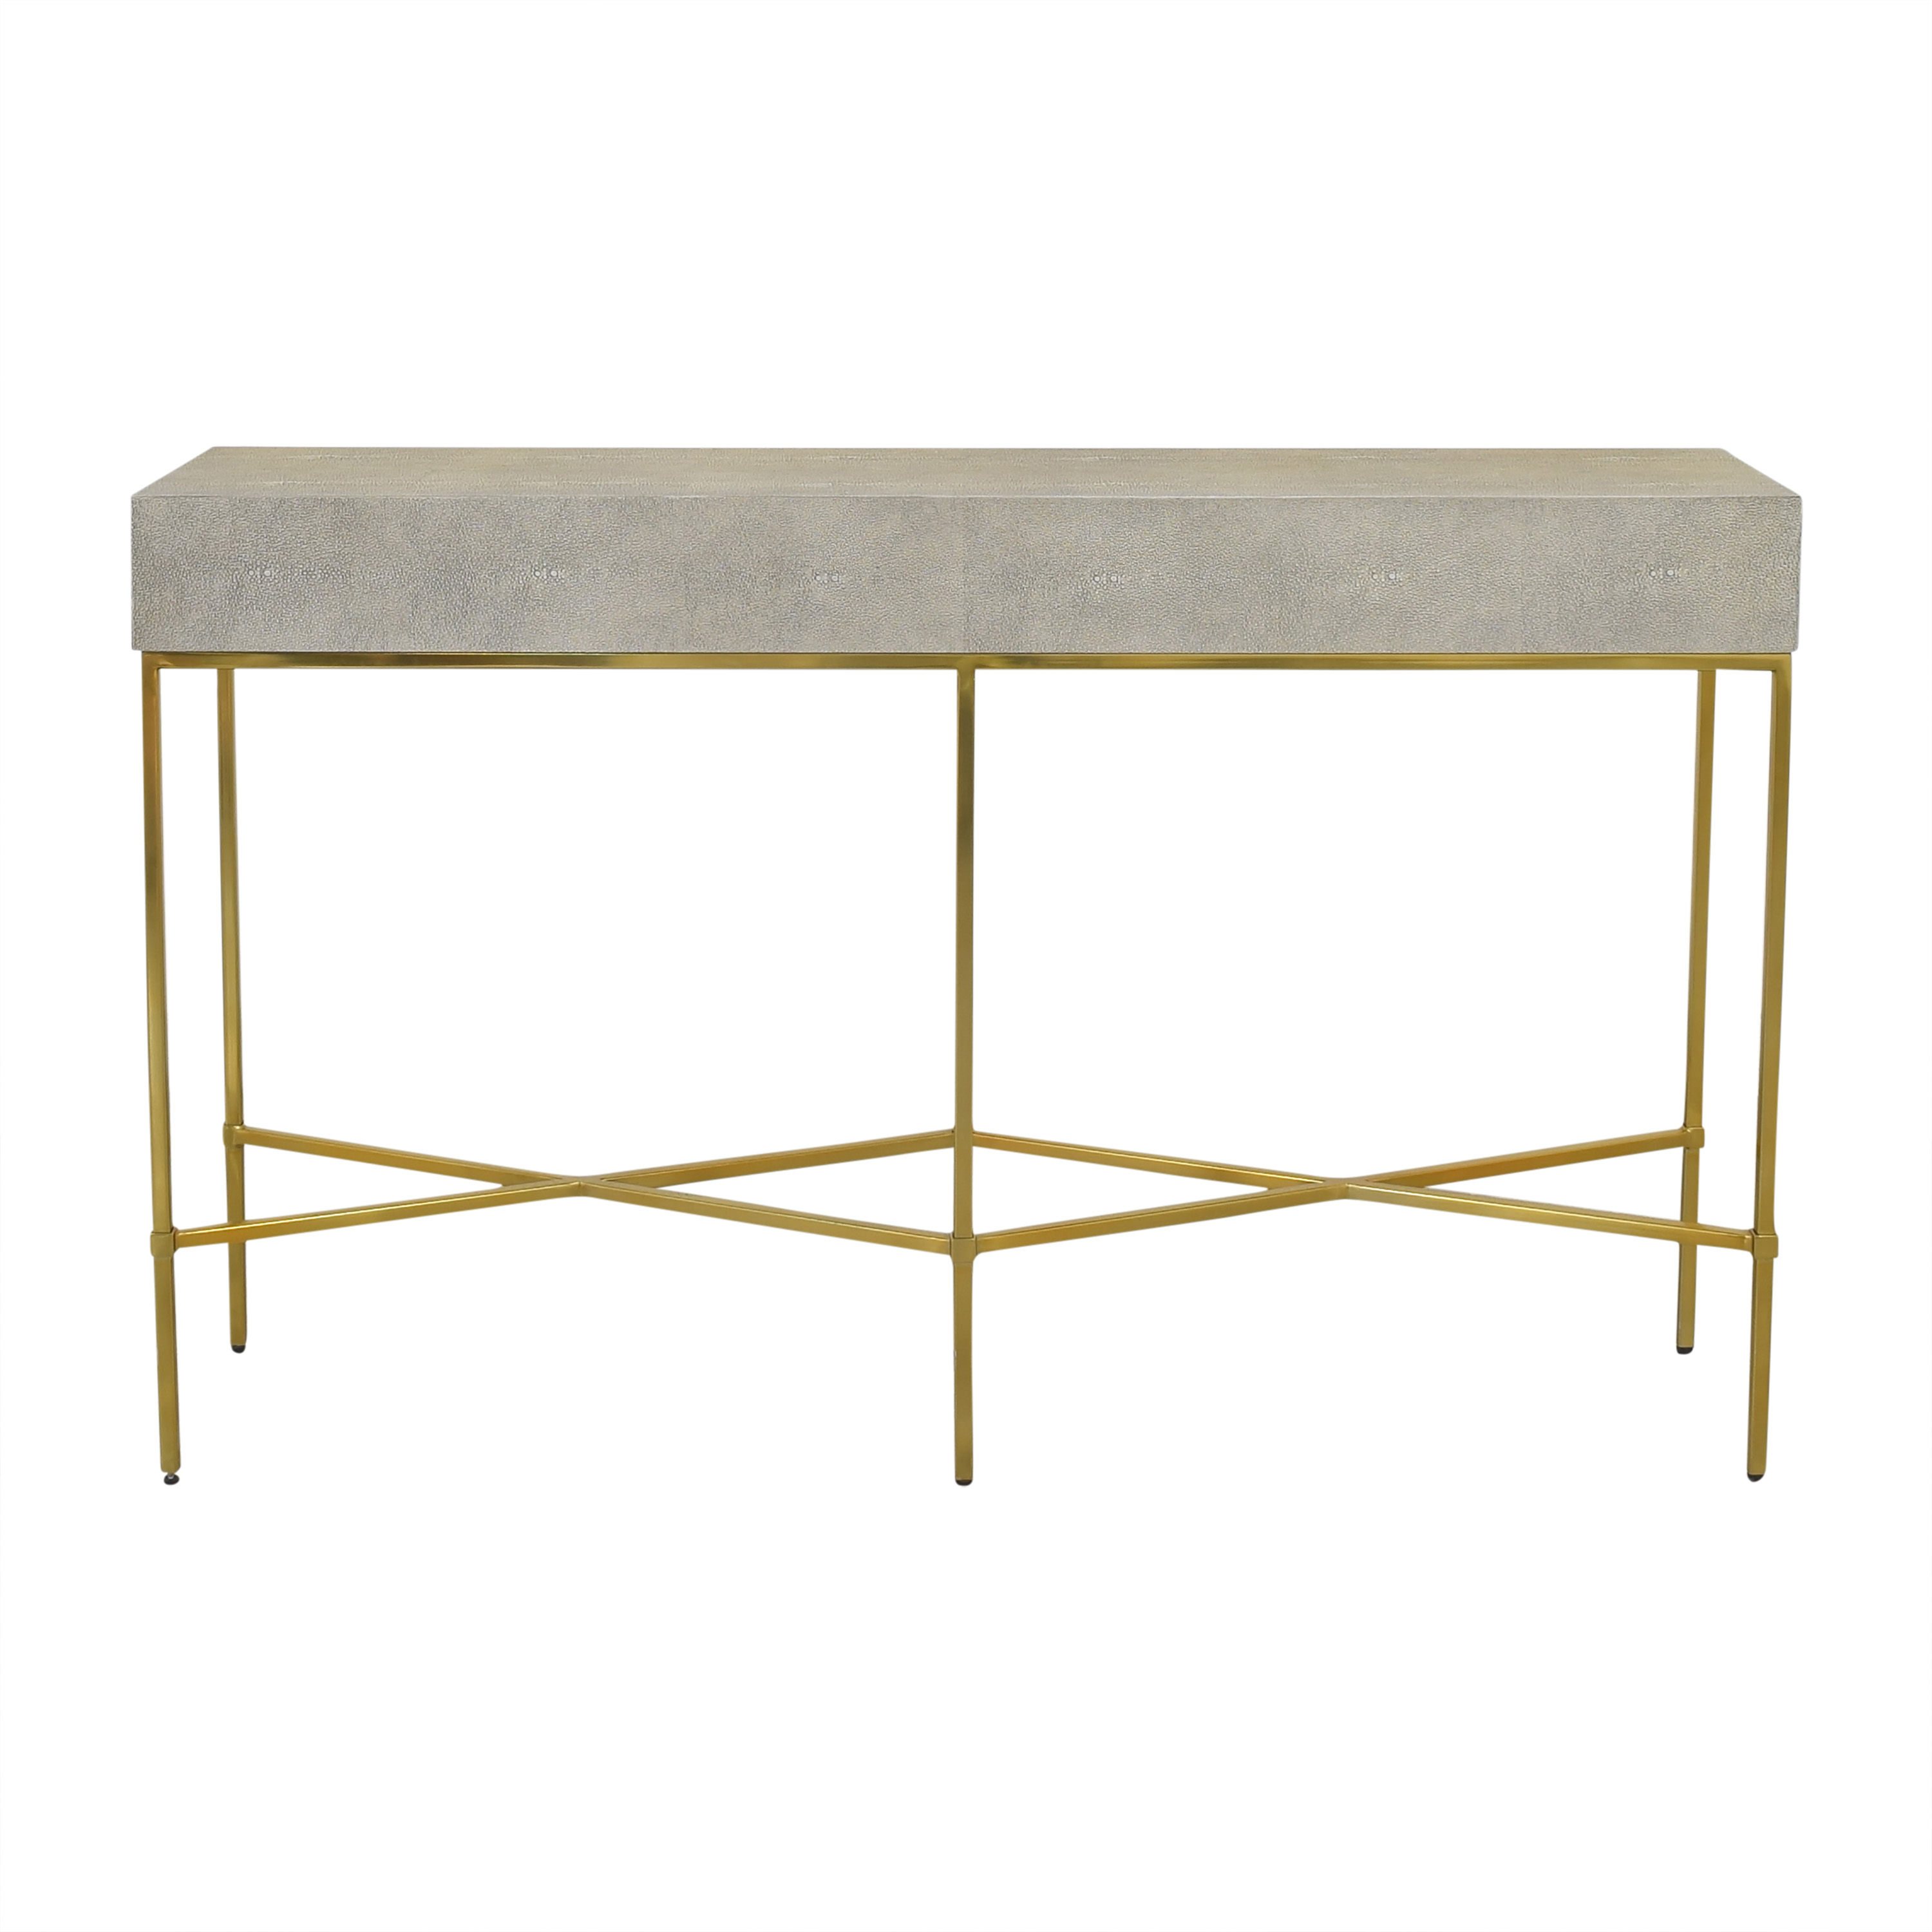 Williams Sonoma Williams Sonoma Modern Console Table on sale